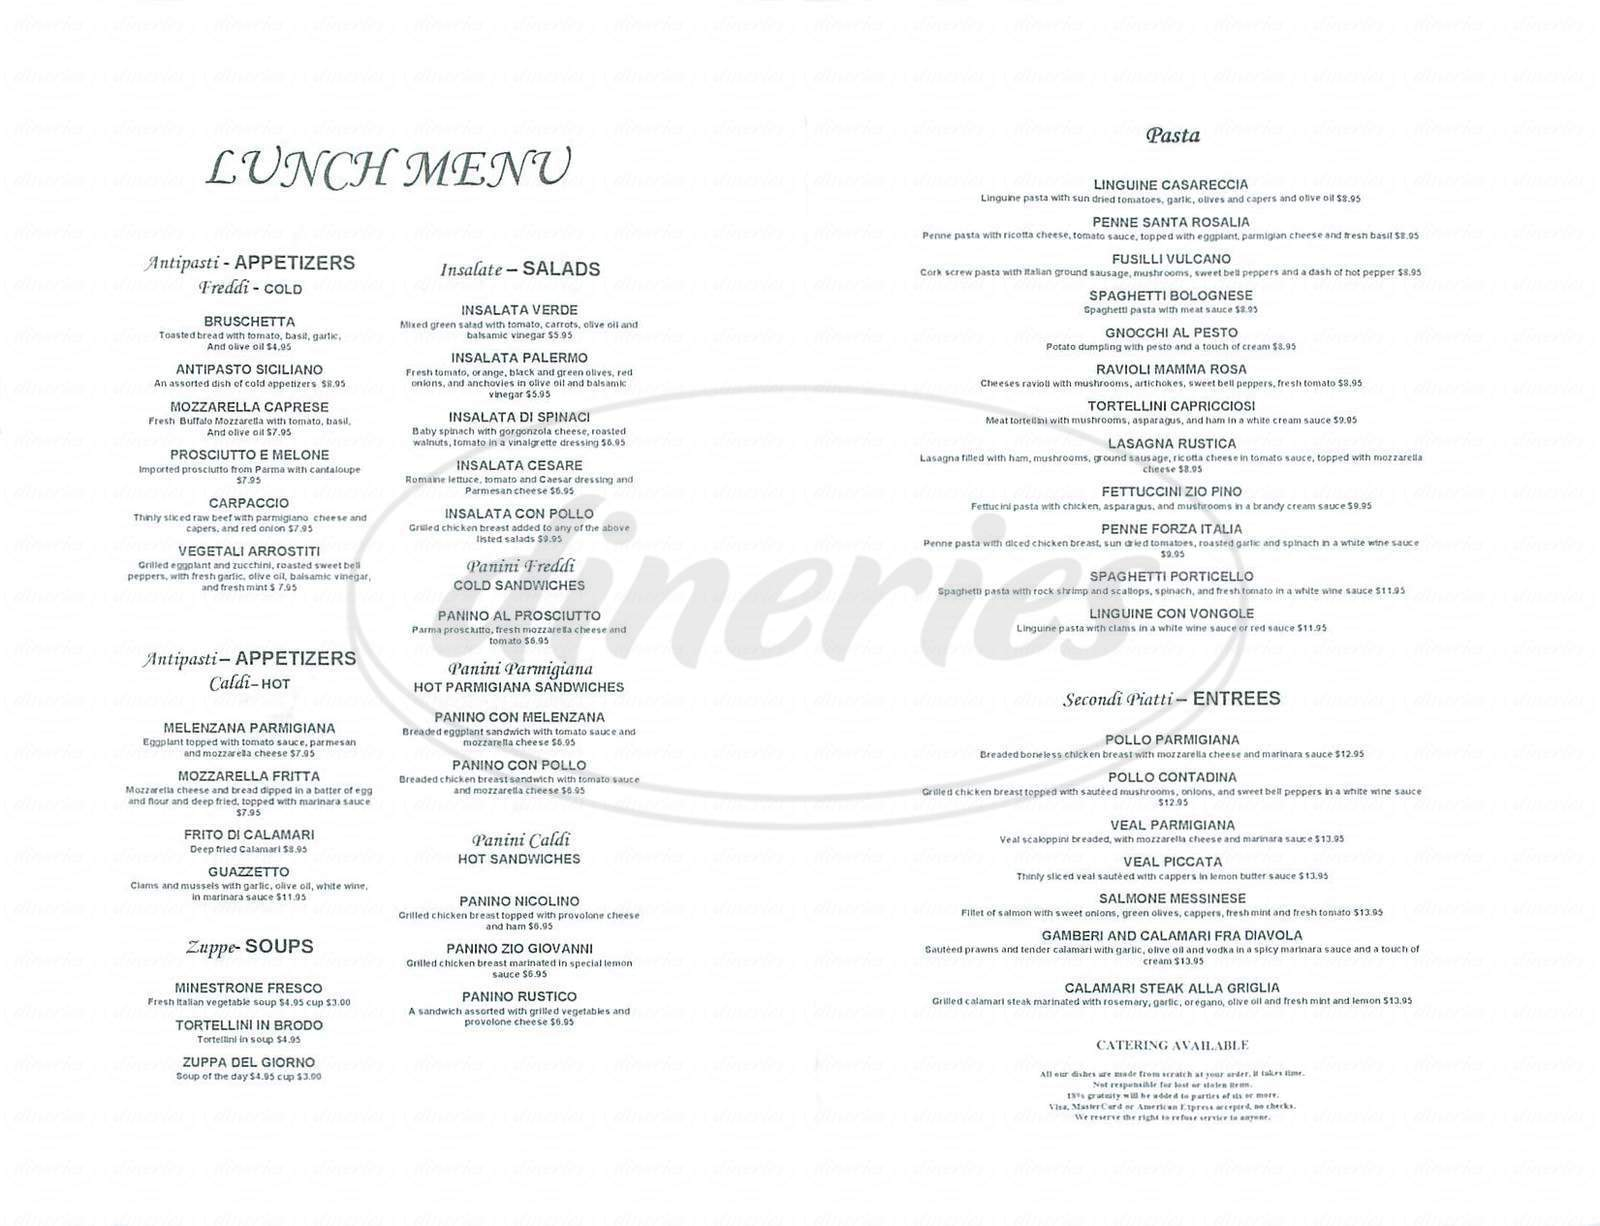 menu for Siciliano Ristorante